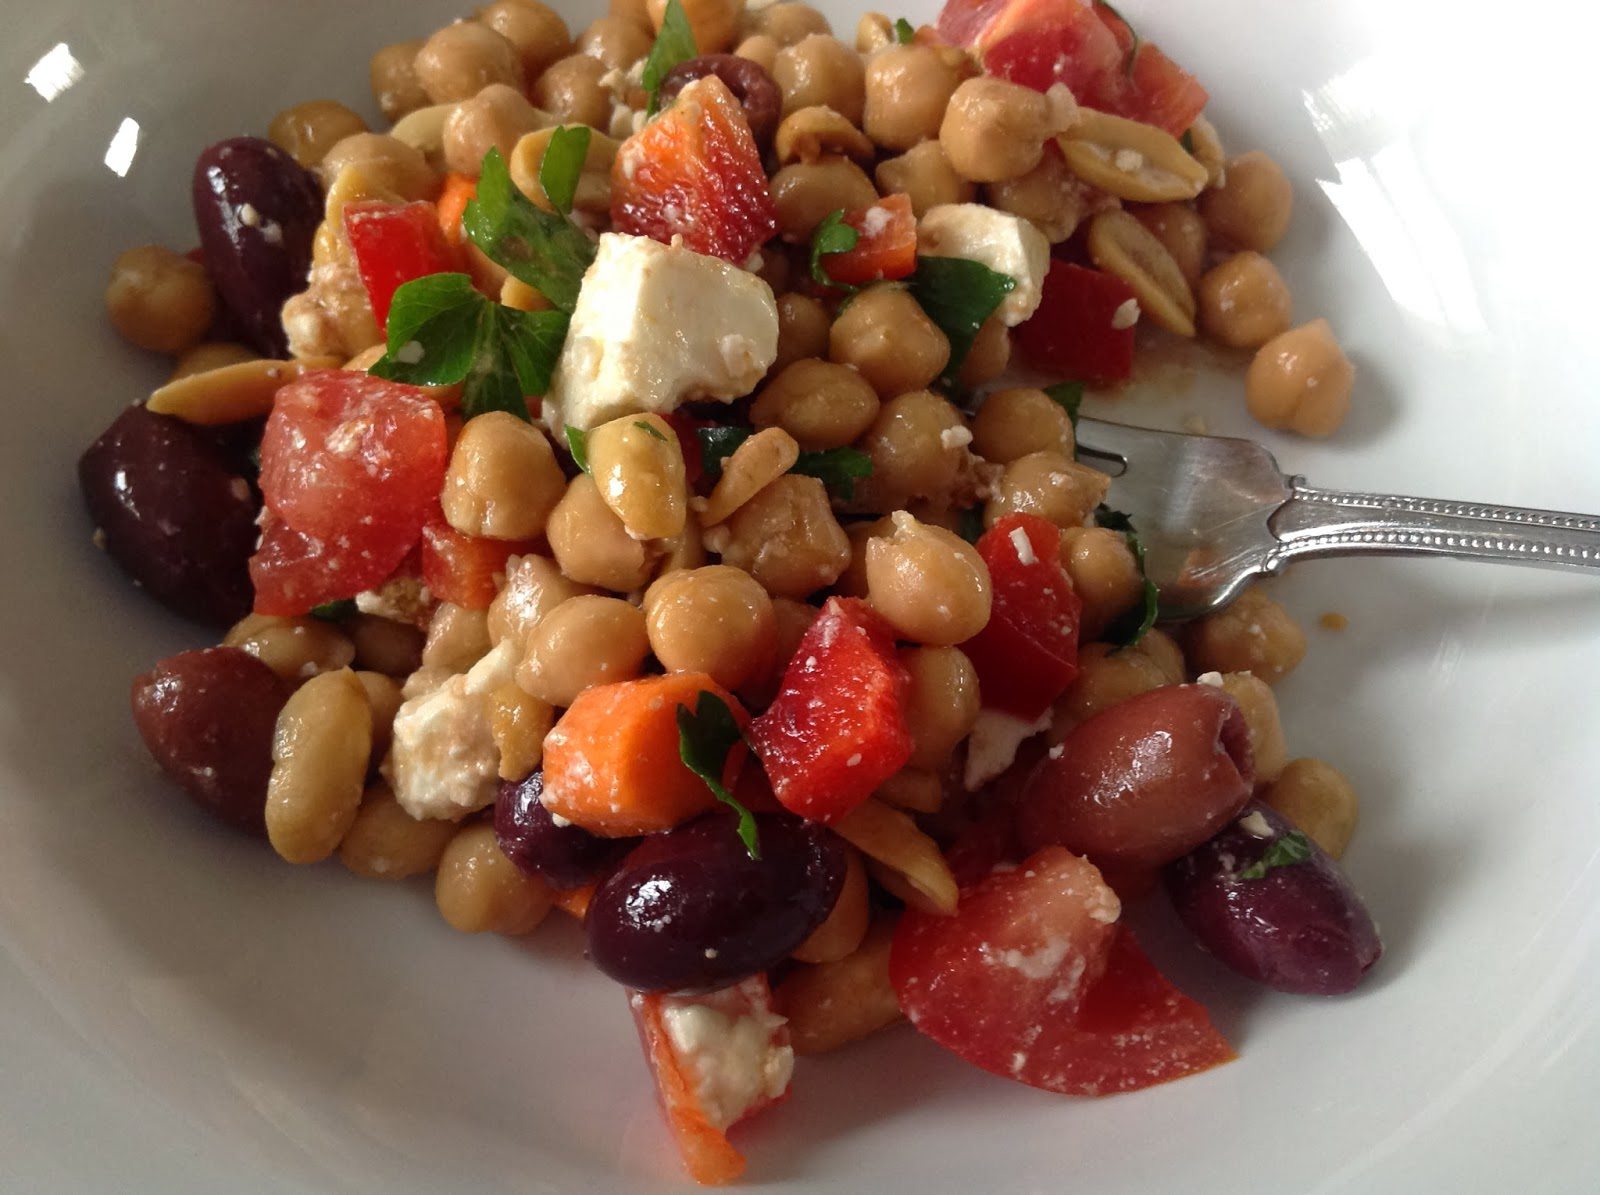 Crunchy Greek Salad with Chickpeas